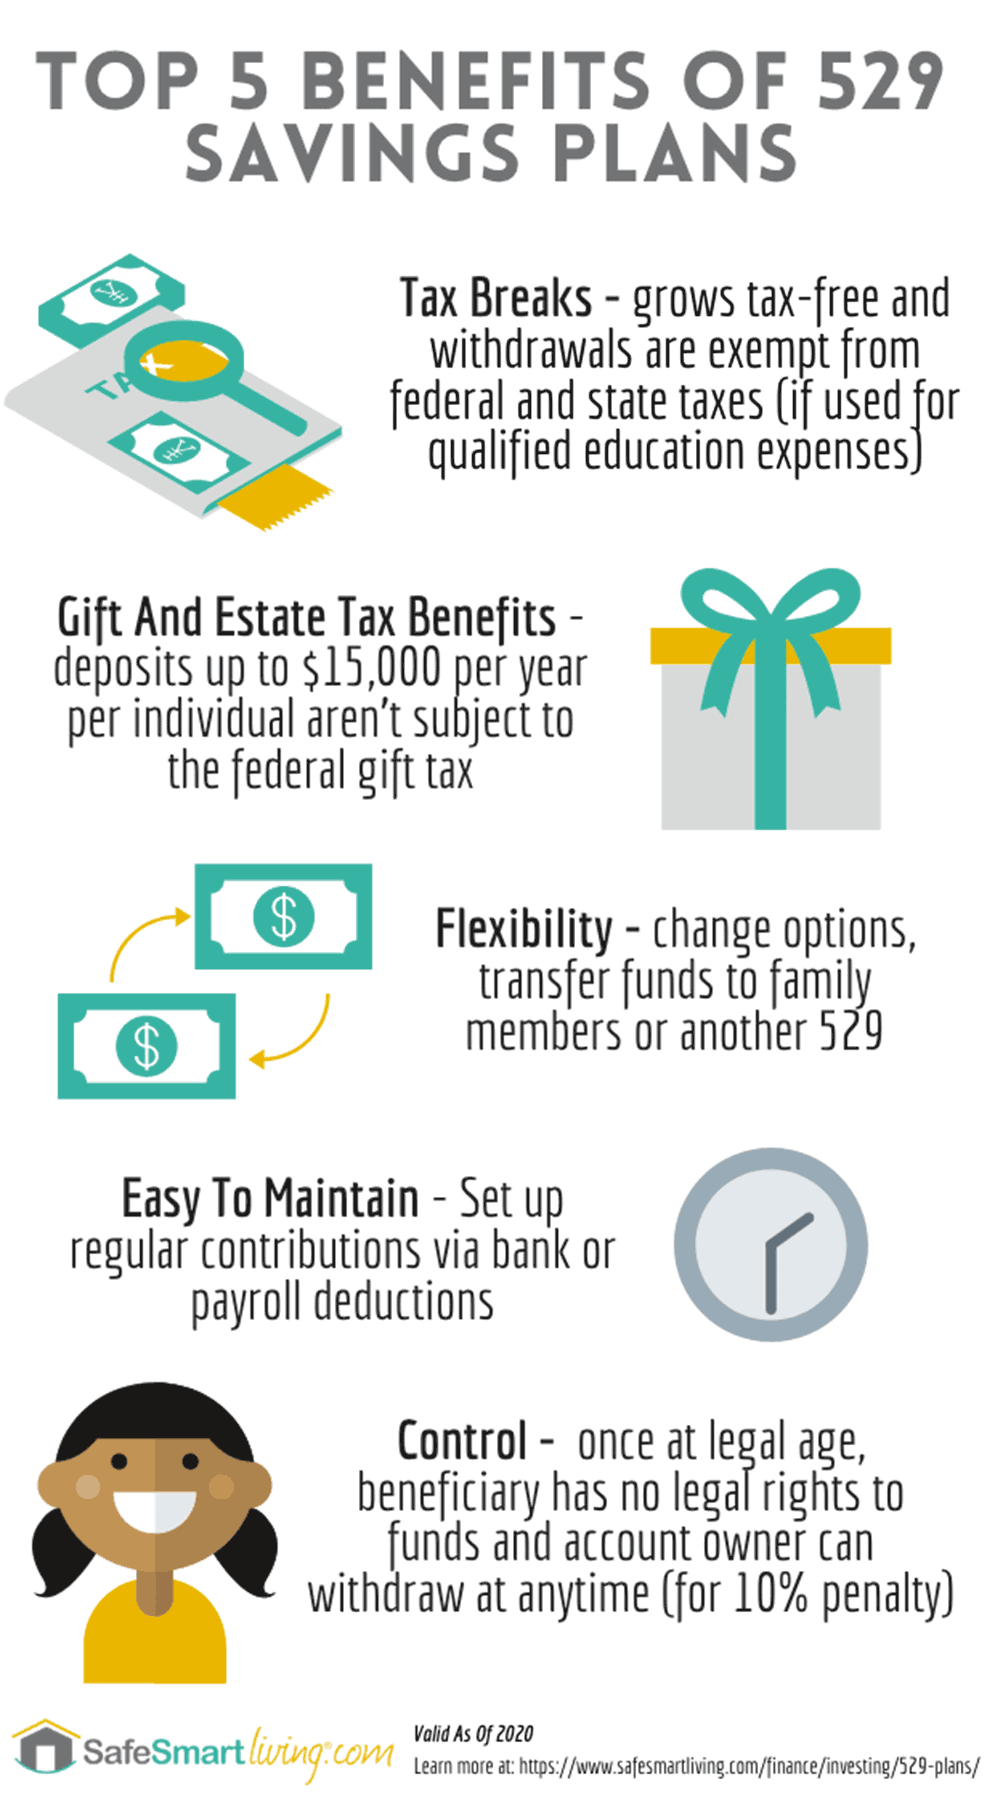 Top 5 Benefits Of 529 Plans Infographic